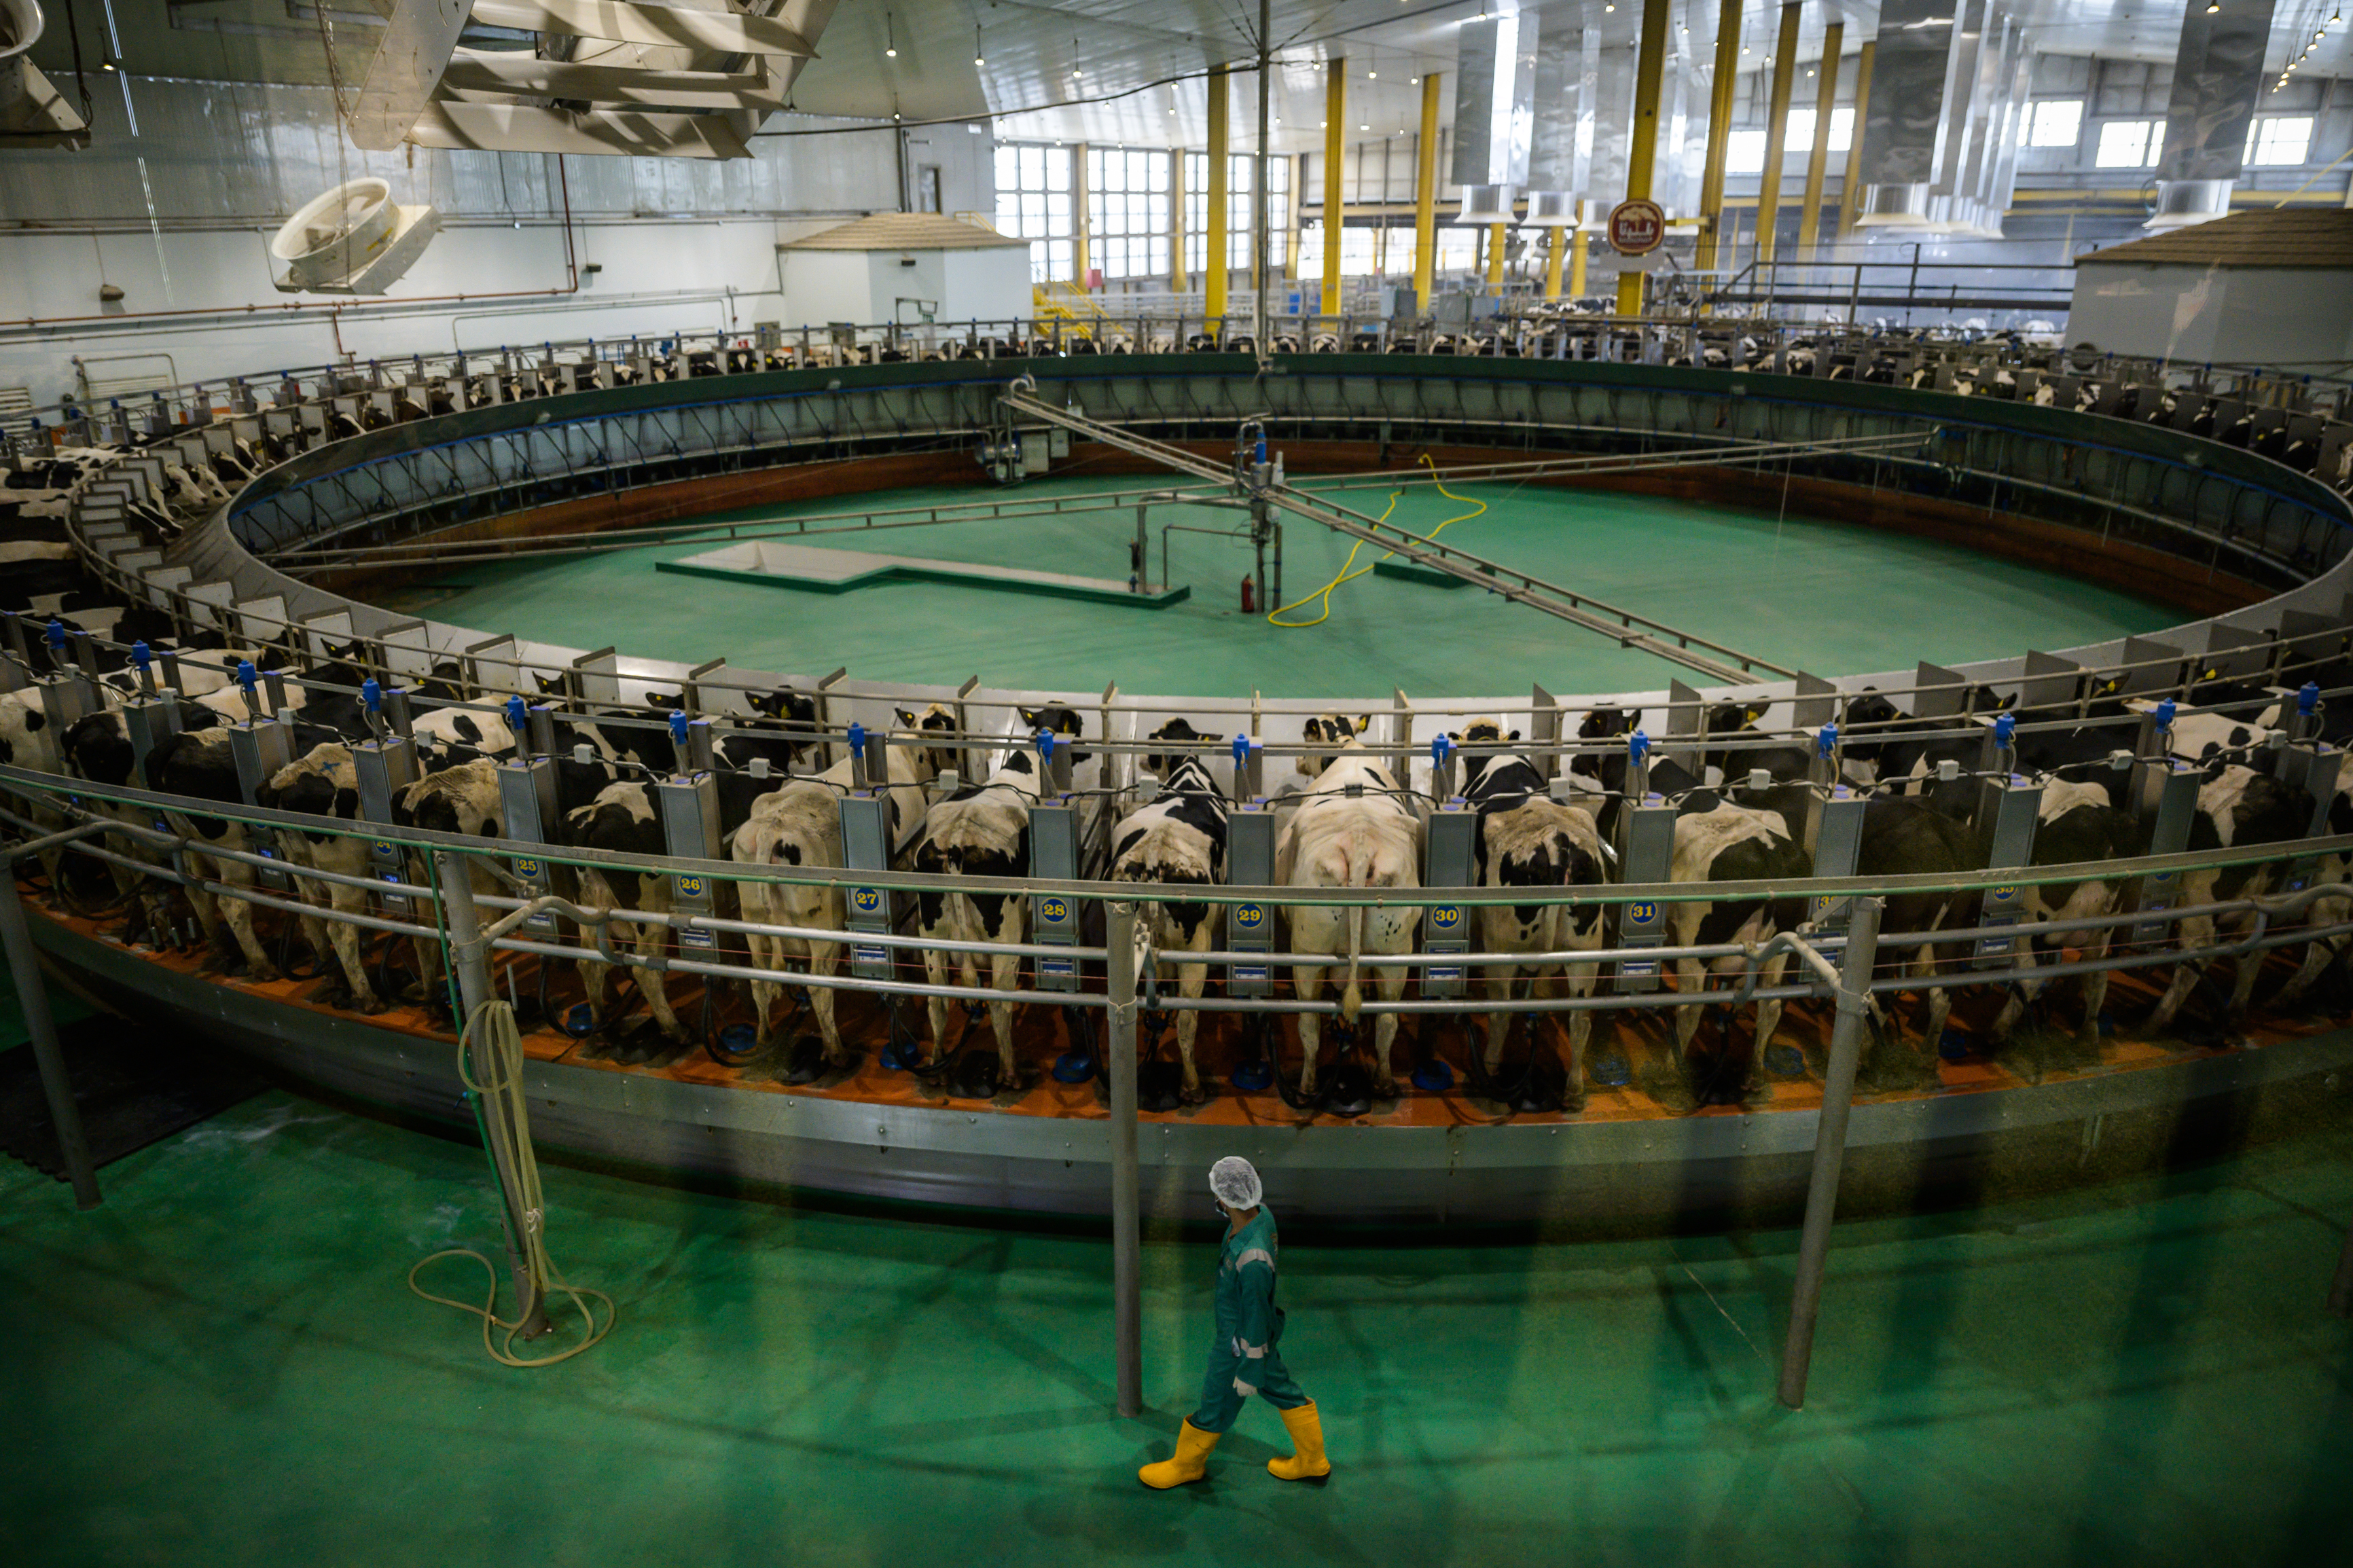 Baladna's Holstein cows are seen inside a dairy farm on circular platform with automated milking tubes on July 9 in Al Khor, Qatar. MUST CREDIT: Washington Post photo by Salwan Georges